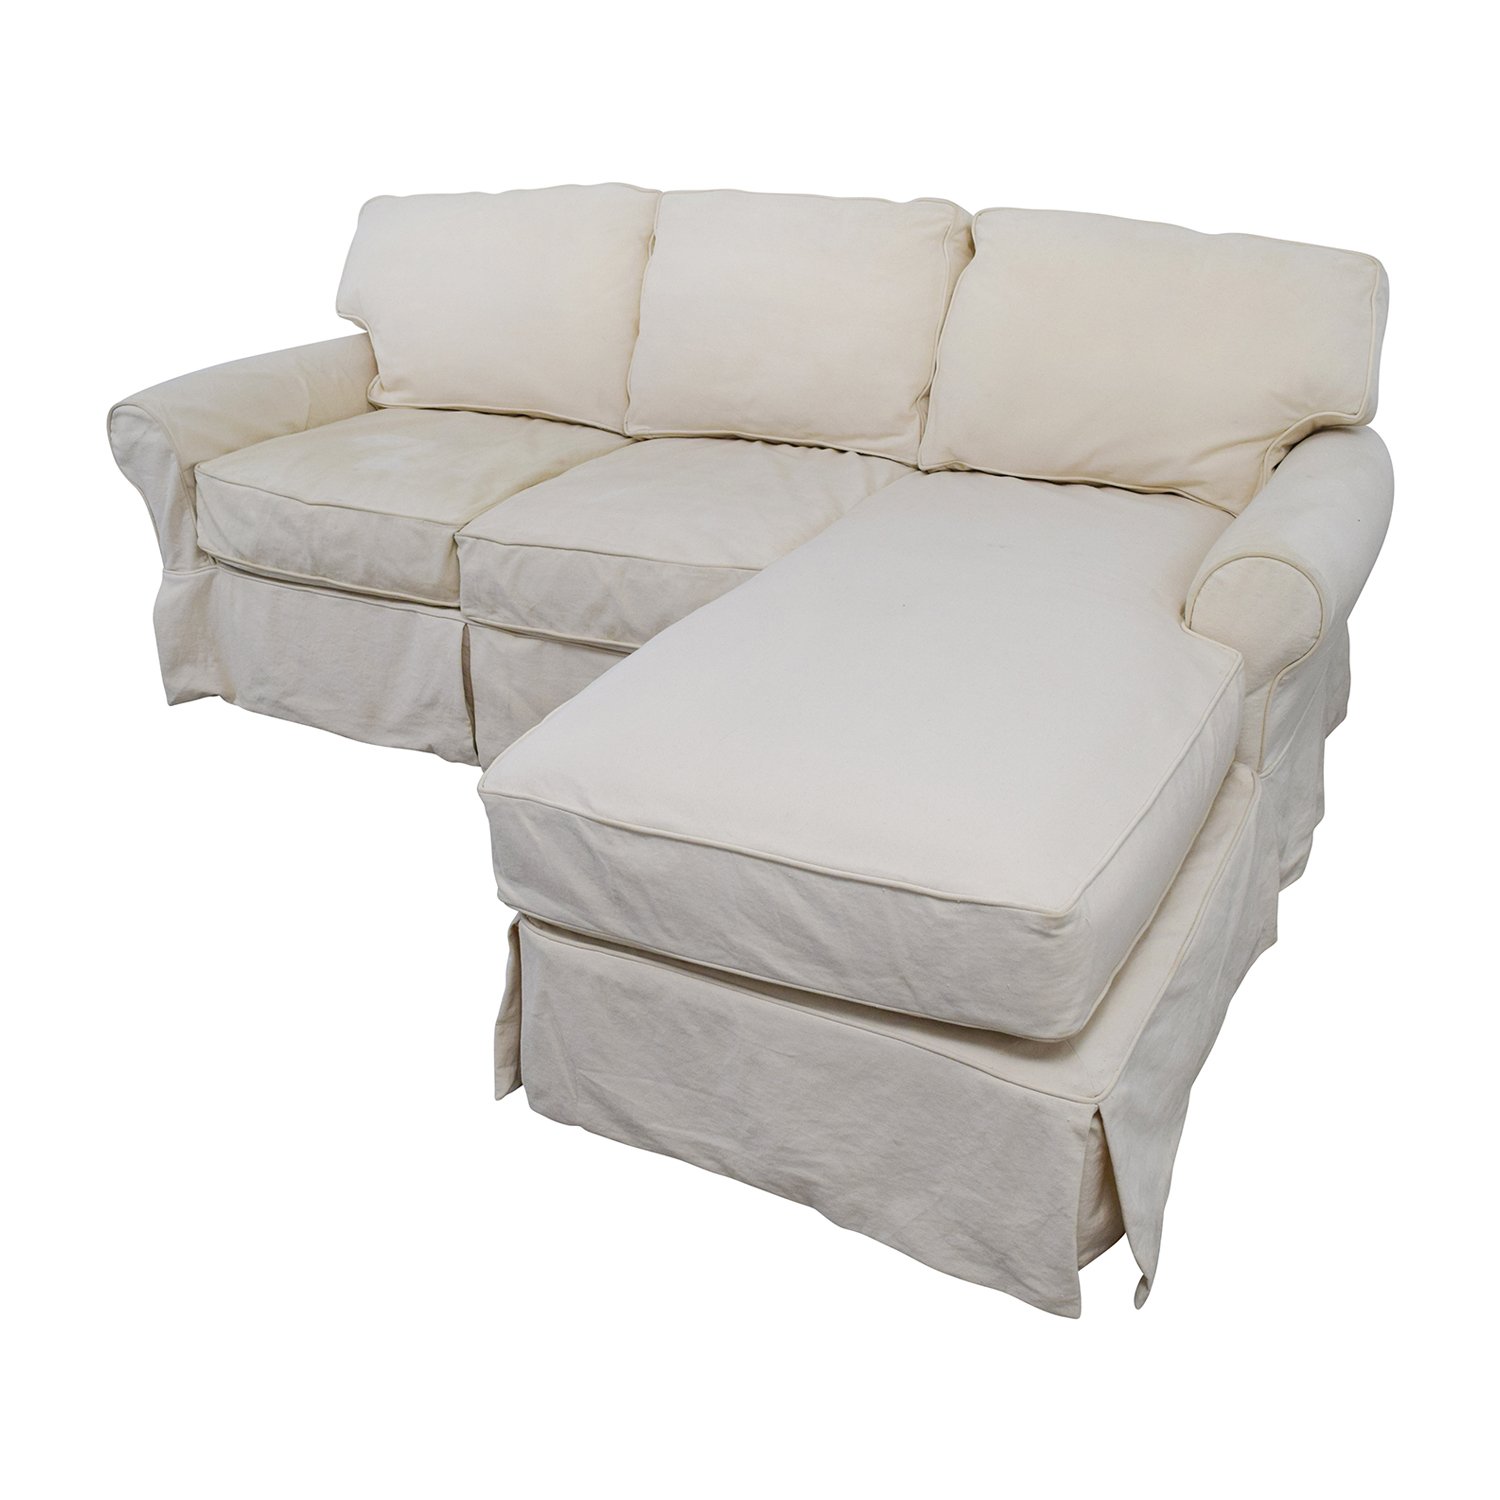 ... Shop Home Decorators Collection Home Decorators Collection Mayfair  White Sectional Online ...